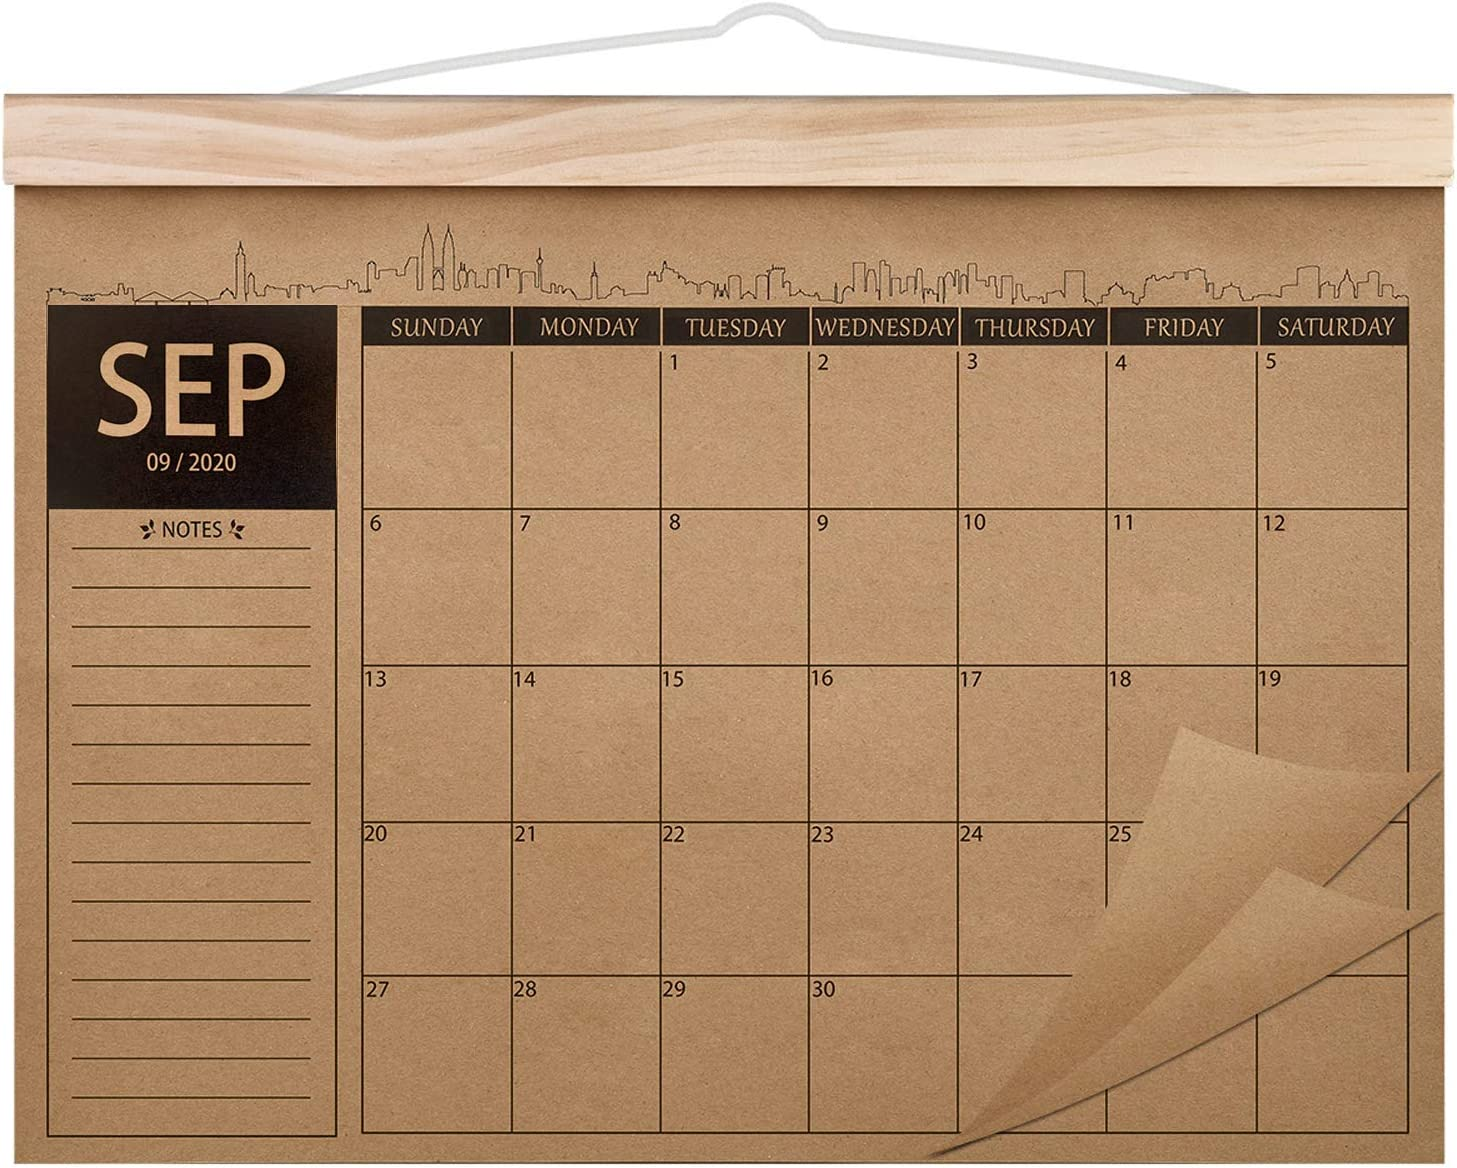 "2020-2022 Calendar - 18 Monthly Academic Desk or Wall Calendar Planner, Thick Kraft Paper Perfect for Organizing & Planning, September 2020 - February 2022, 12.2""x16.5"" - Norjews"